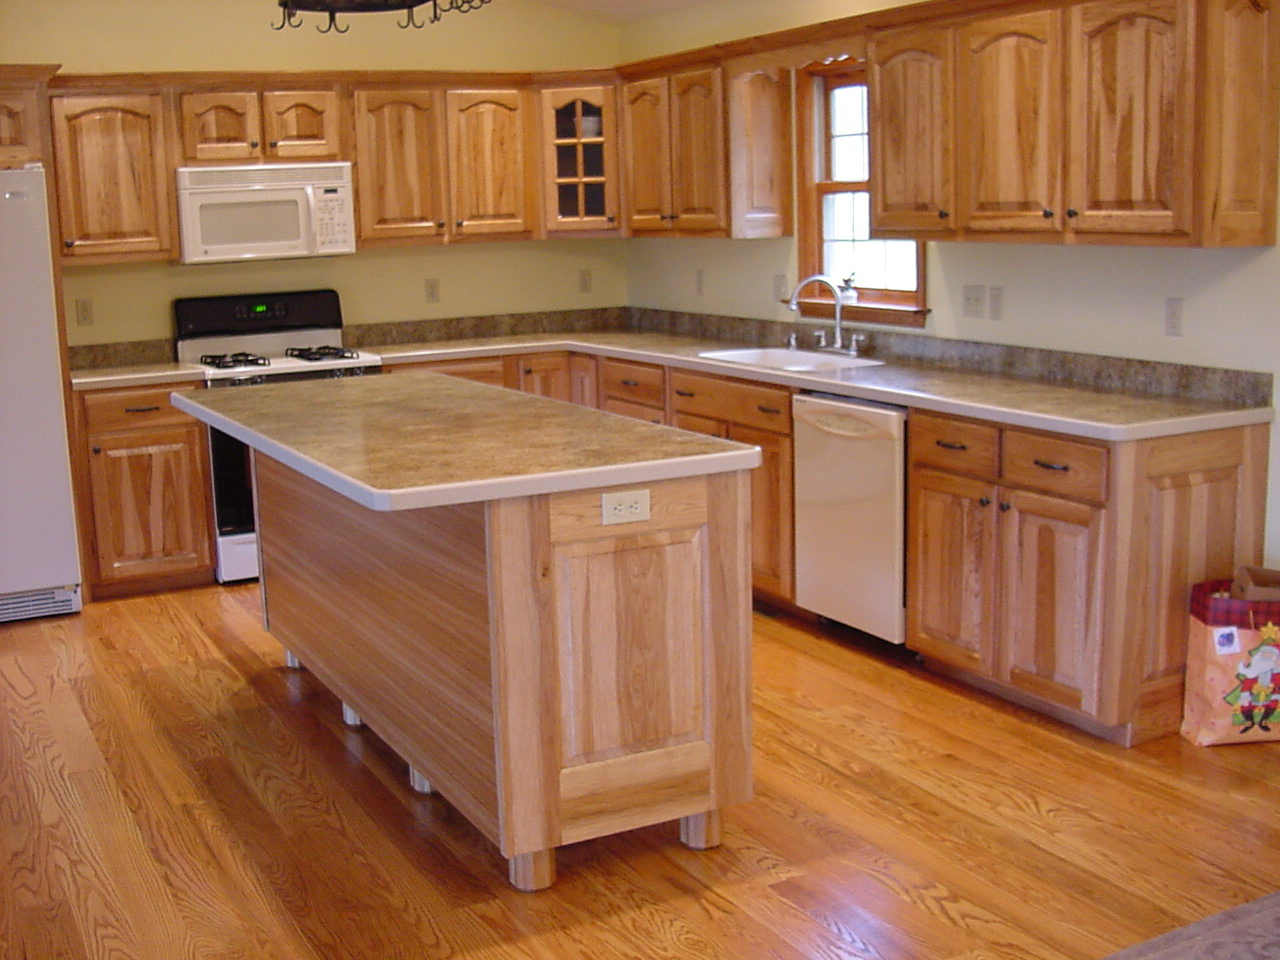 wood options laminate prefab island butcher kitchen stone of countertop kitchens sale block lowes from cost affordablec for surfaces countertops size type types ideas pictures vanity materials full best granite quartz fake top